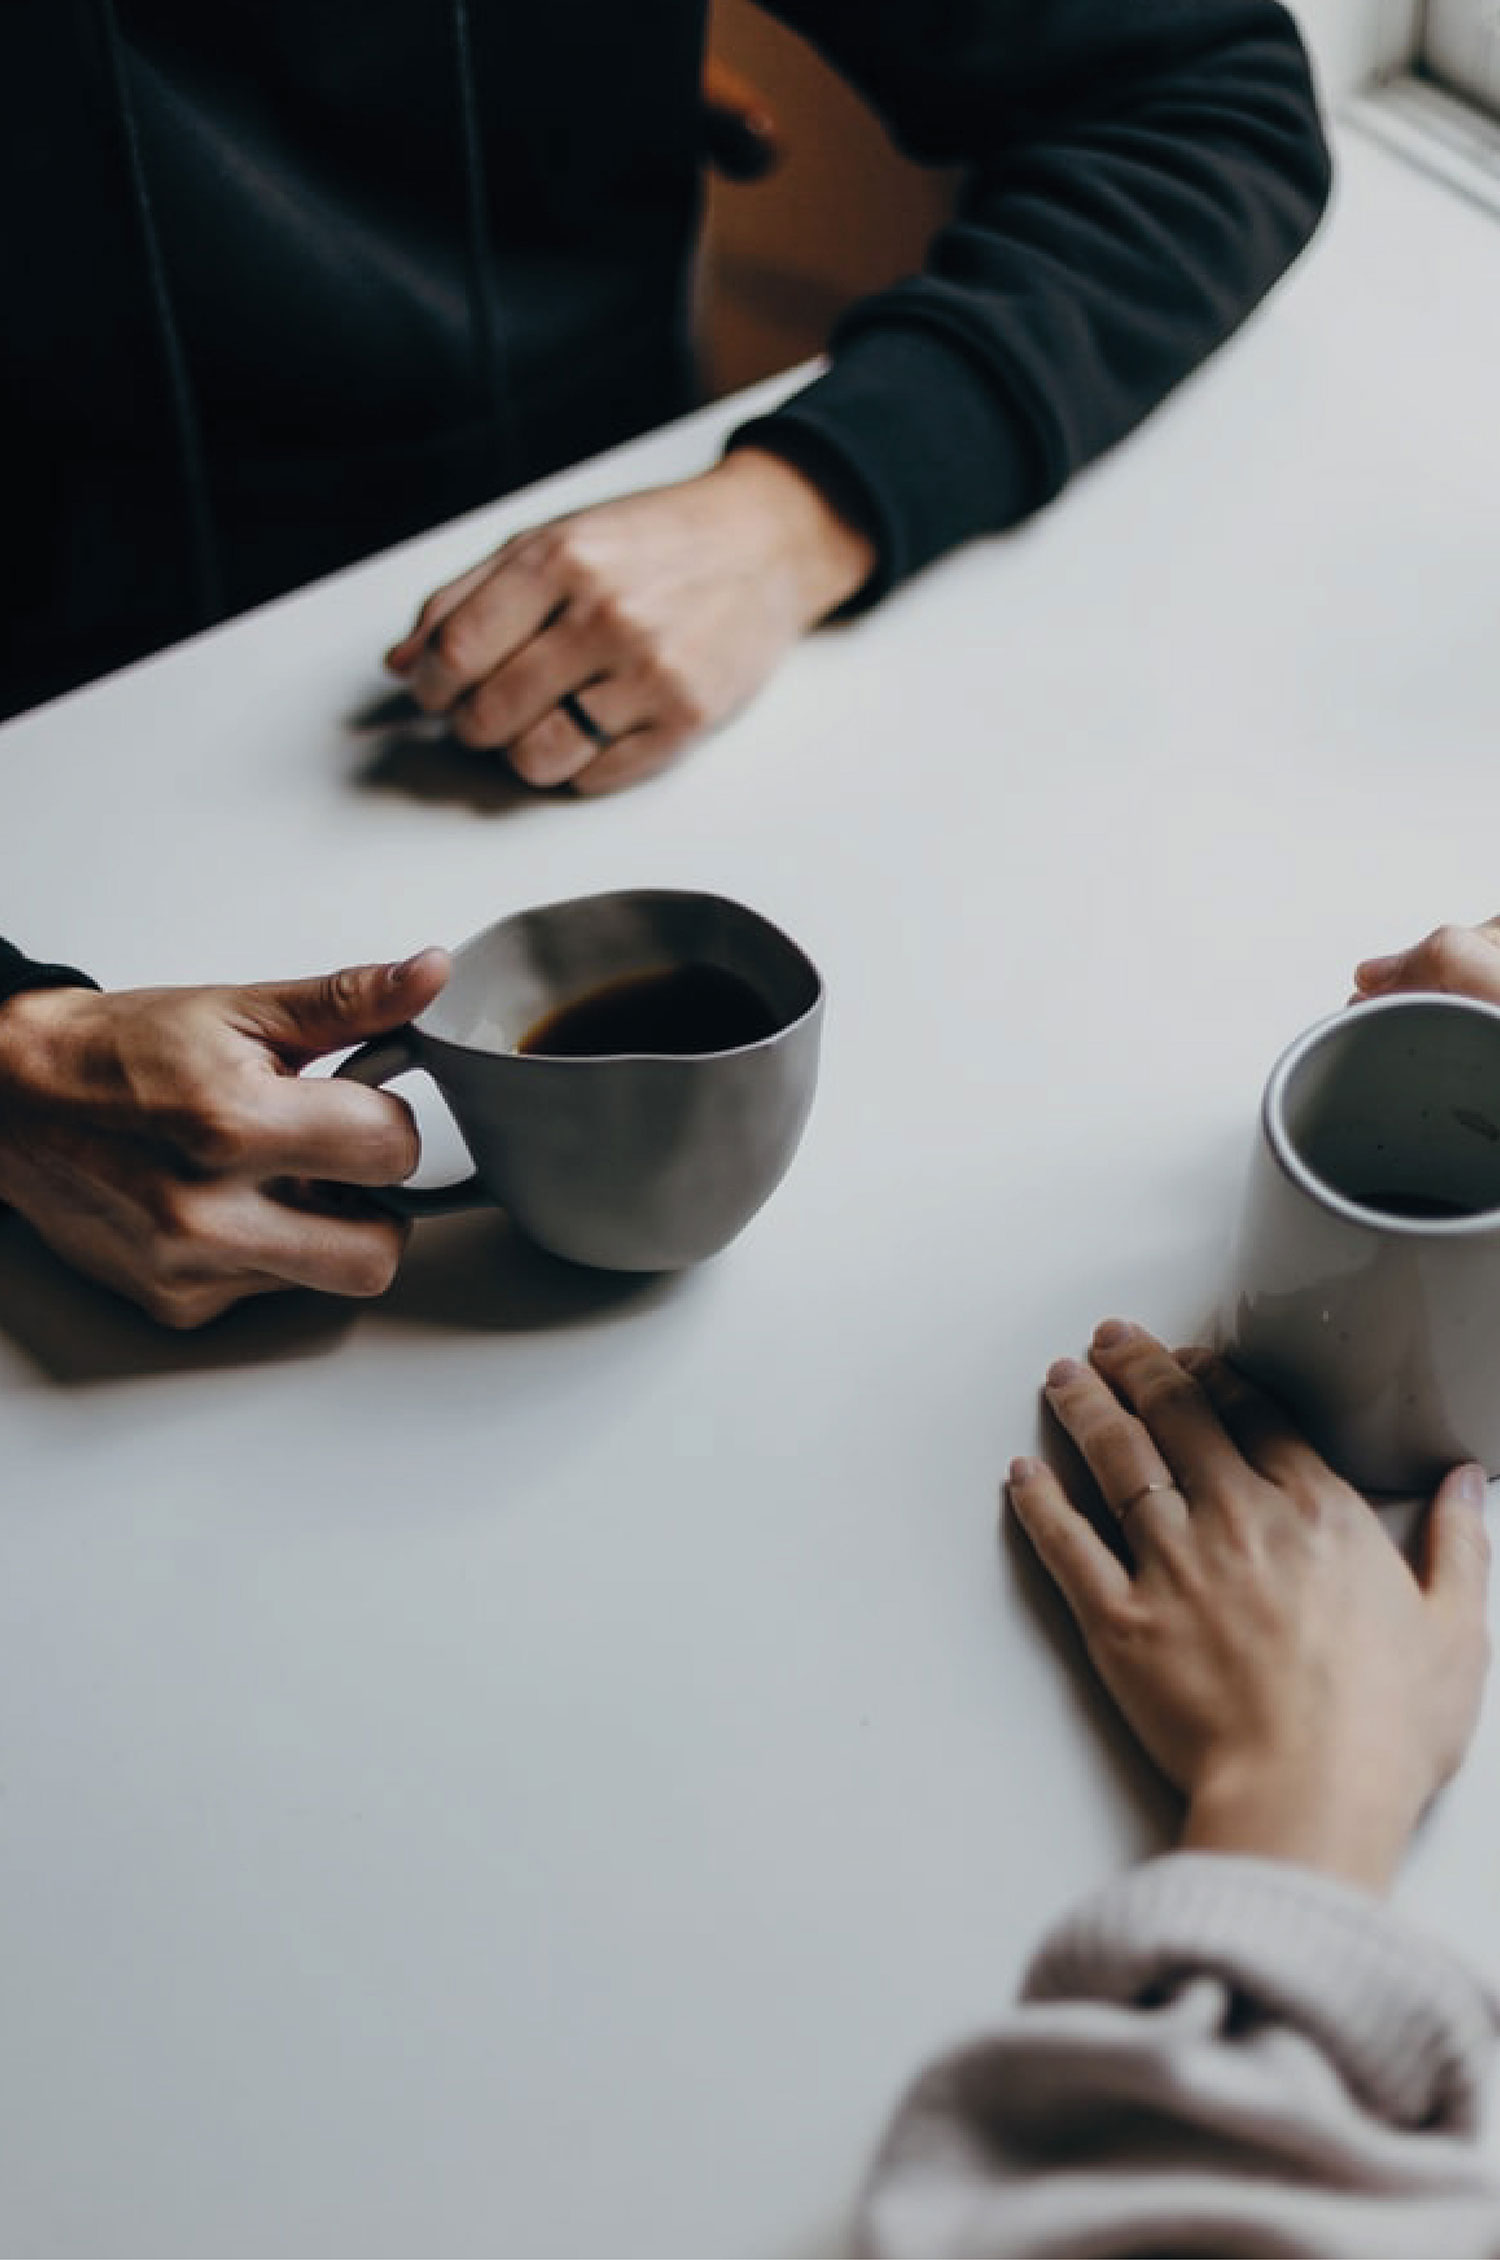 Two people having coffee together